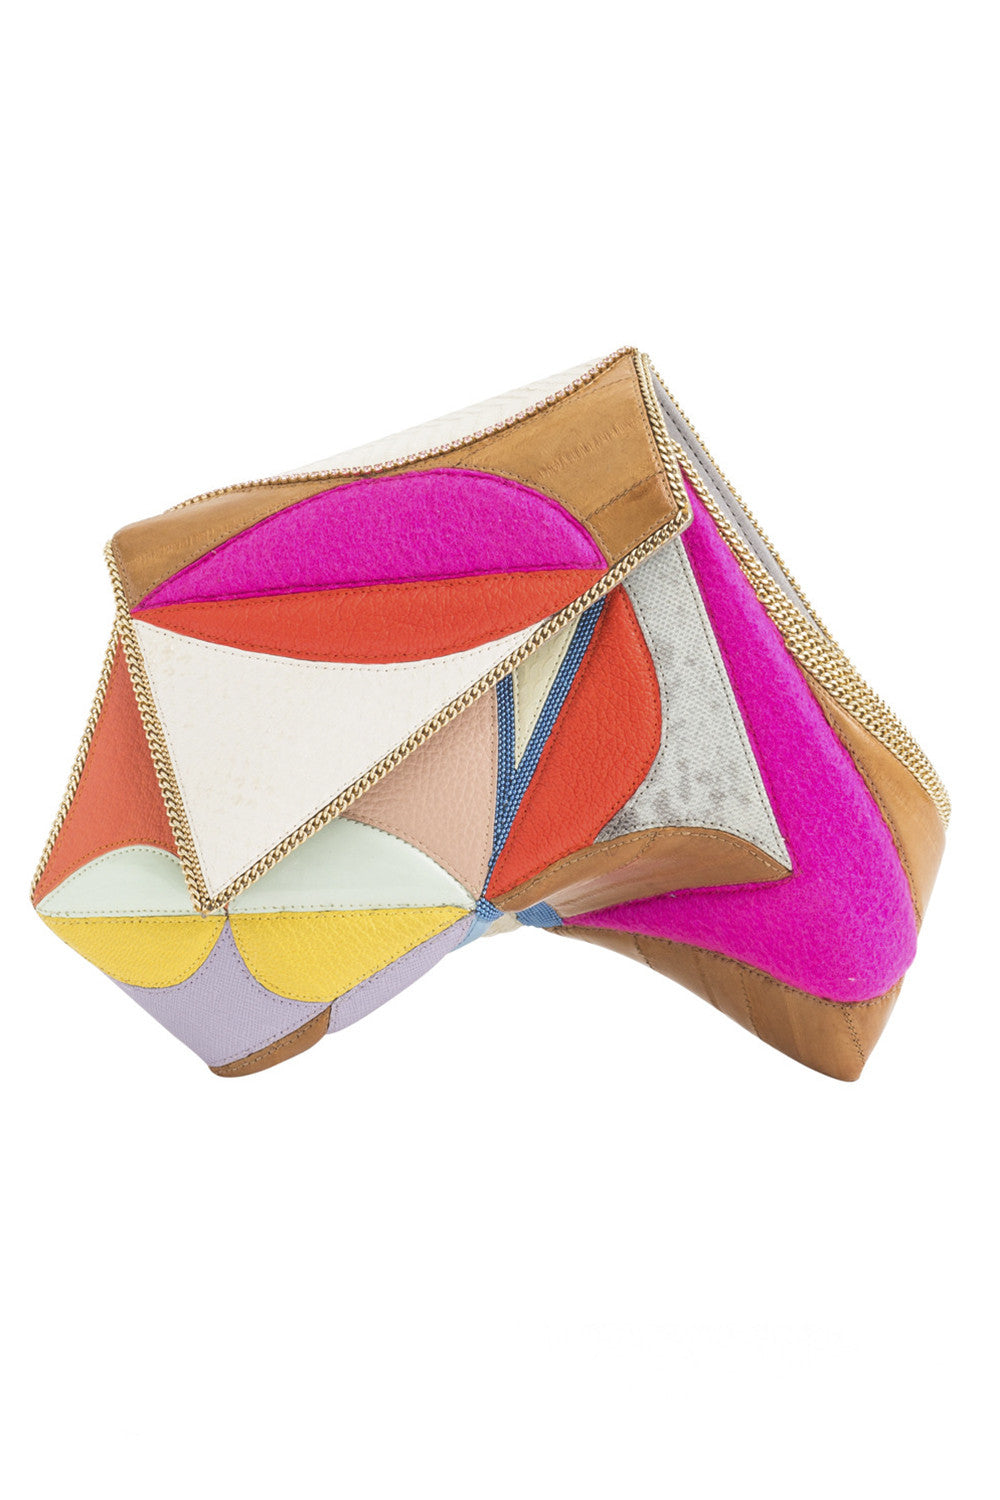 CIRQUE Clutch in Orange & Pink